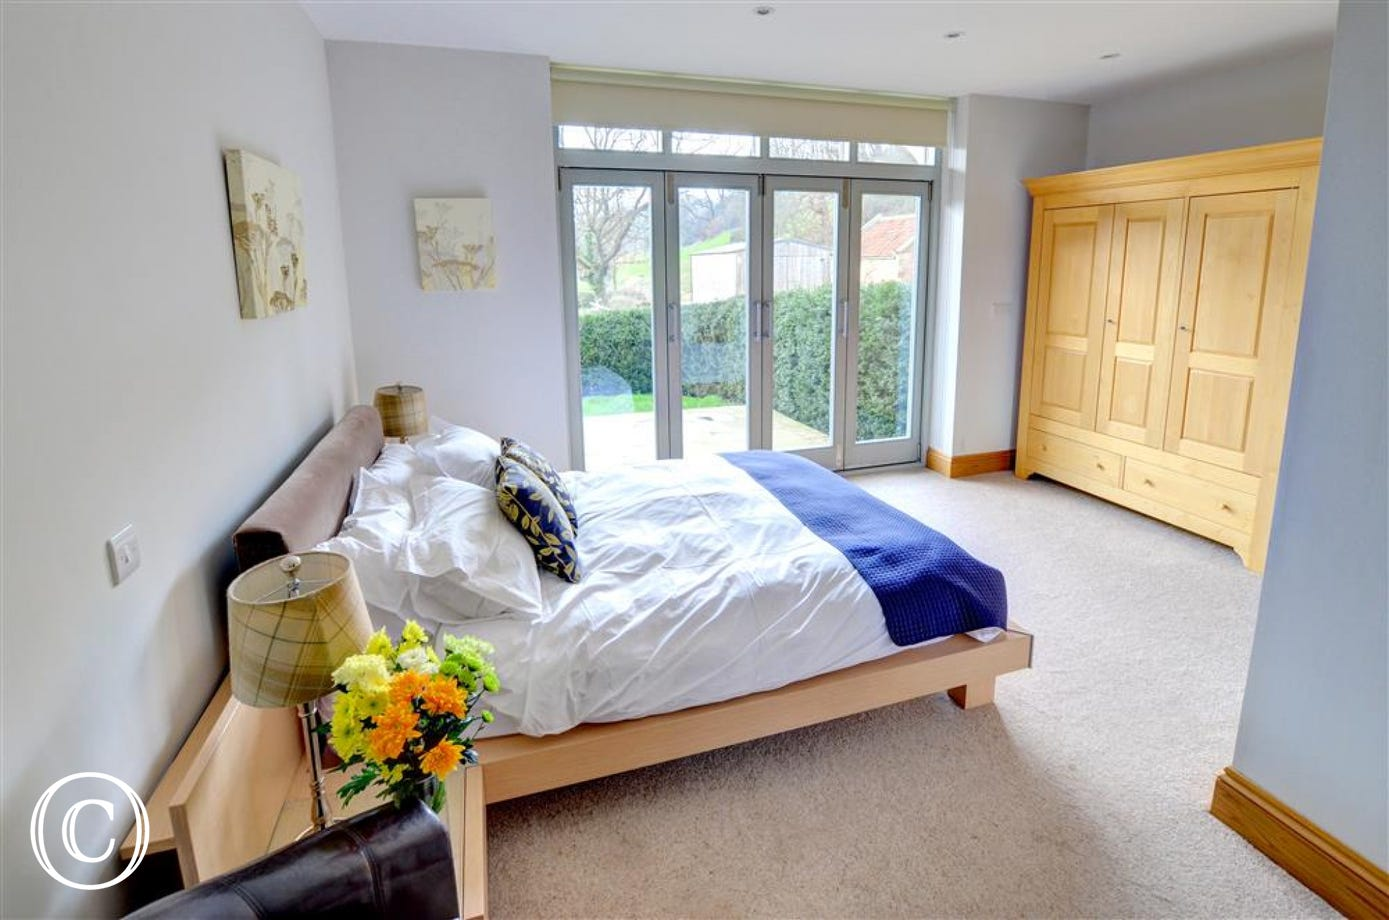 Bedroom is spacious and has large wardrobe and an en-suite.